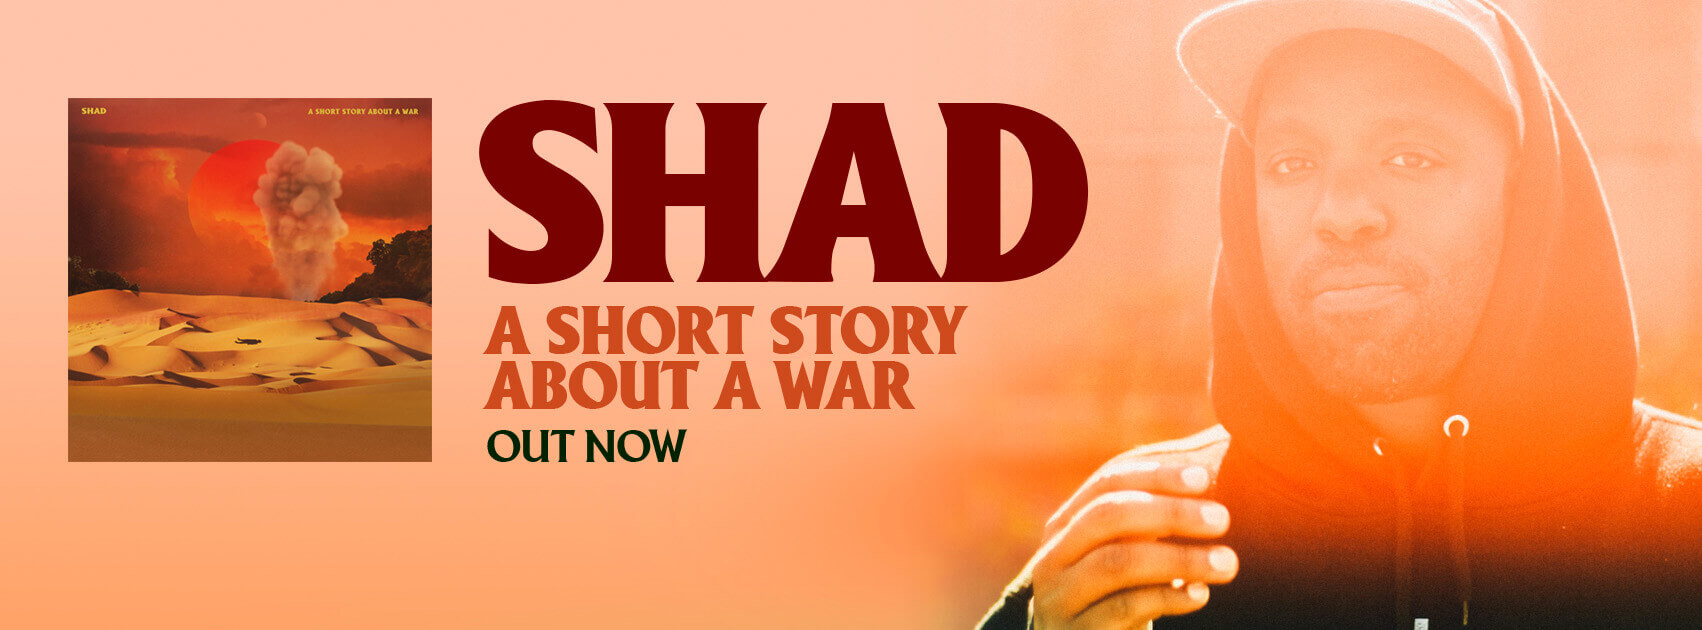 Shad A Short Story About A War out now